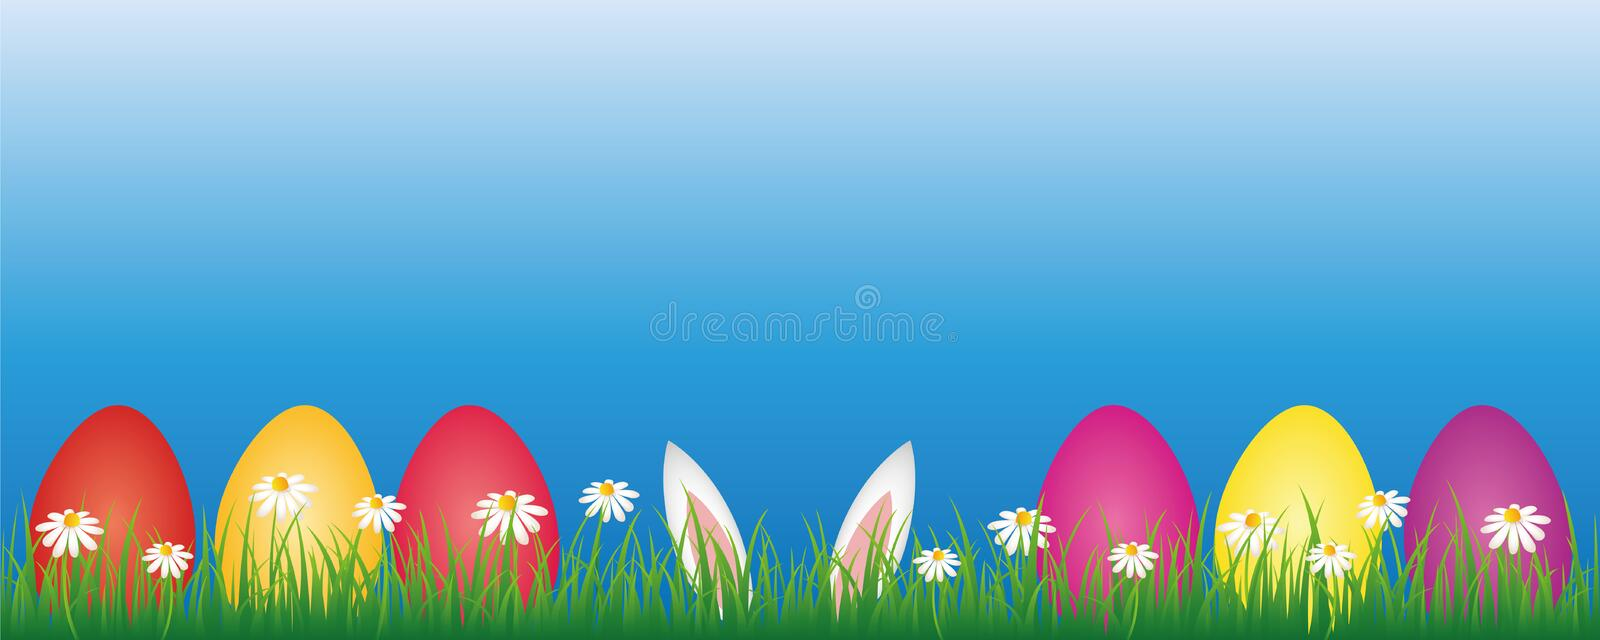 Bunny ears and colorful easter eggs in green meadow with white daisy flowers banner with copy space royalty free illustration